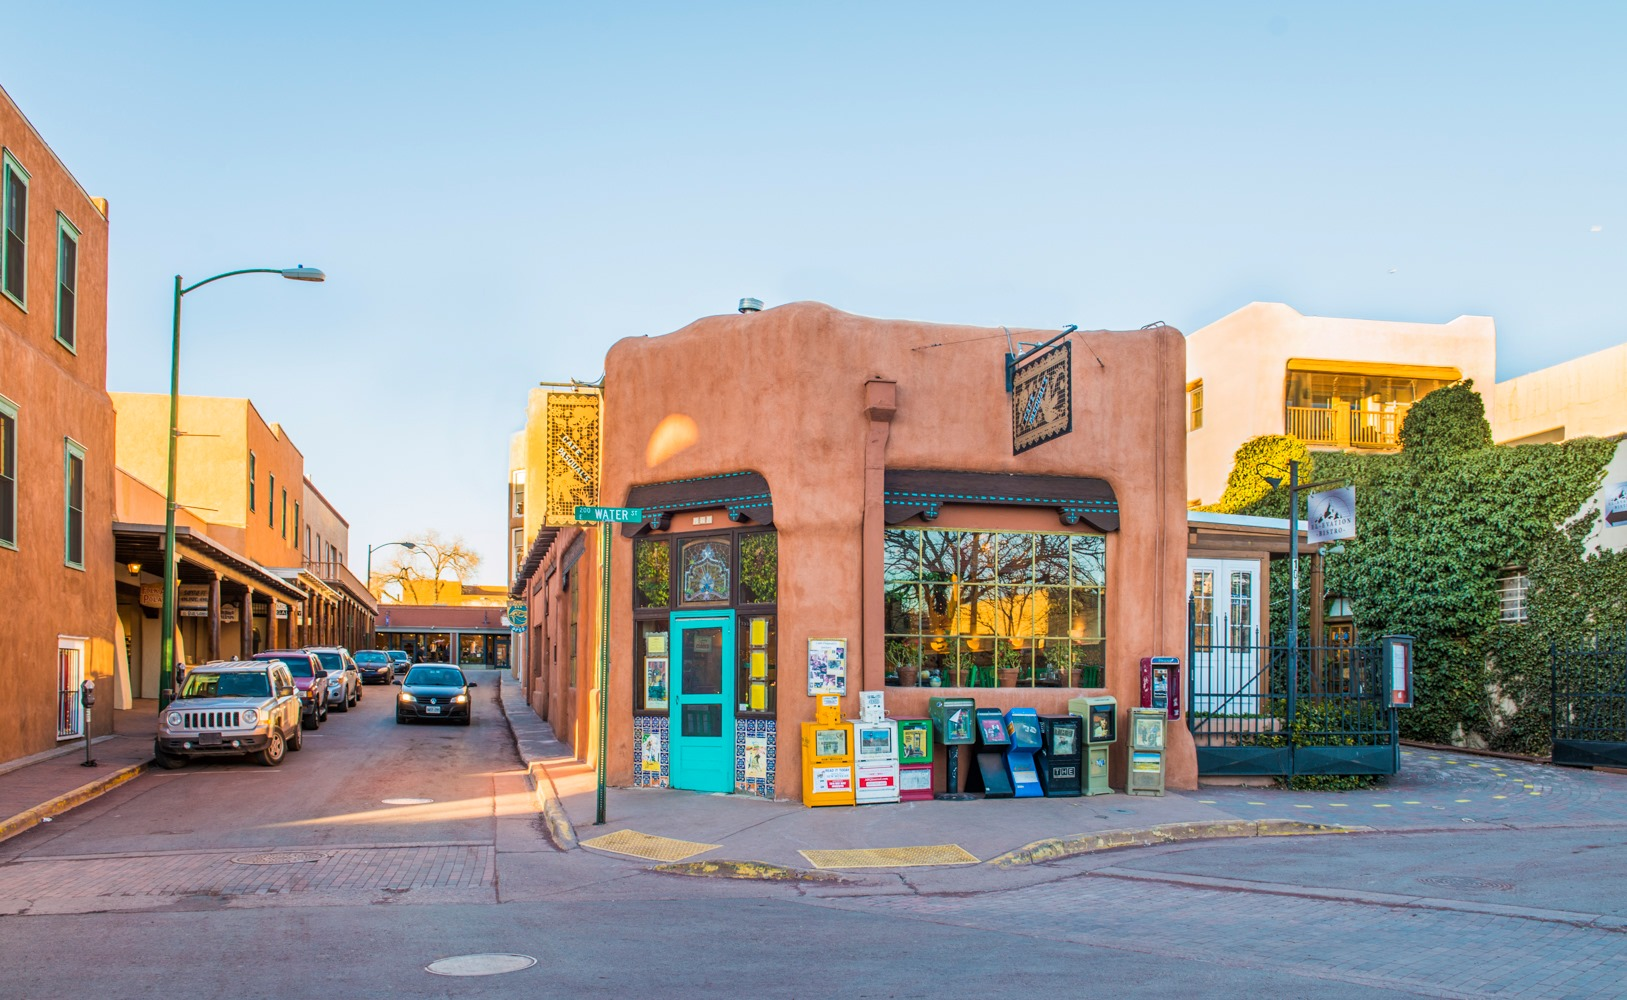 Exterior building image of Cafe Pasqual's in the historic downtown of Santa Fe New Mexico